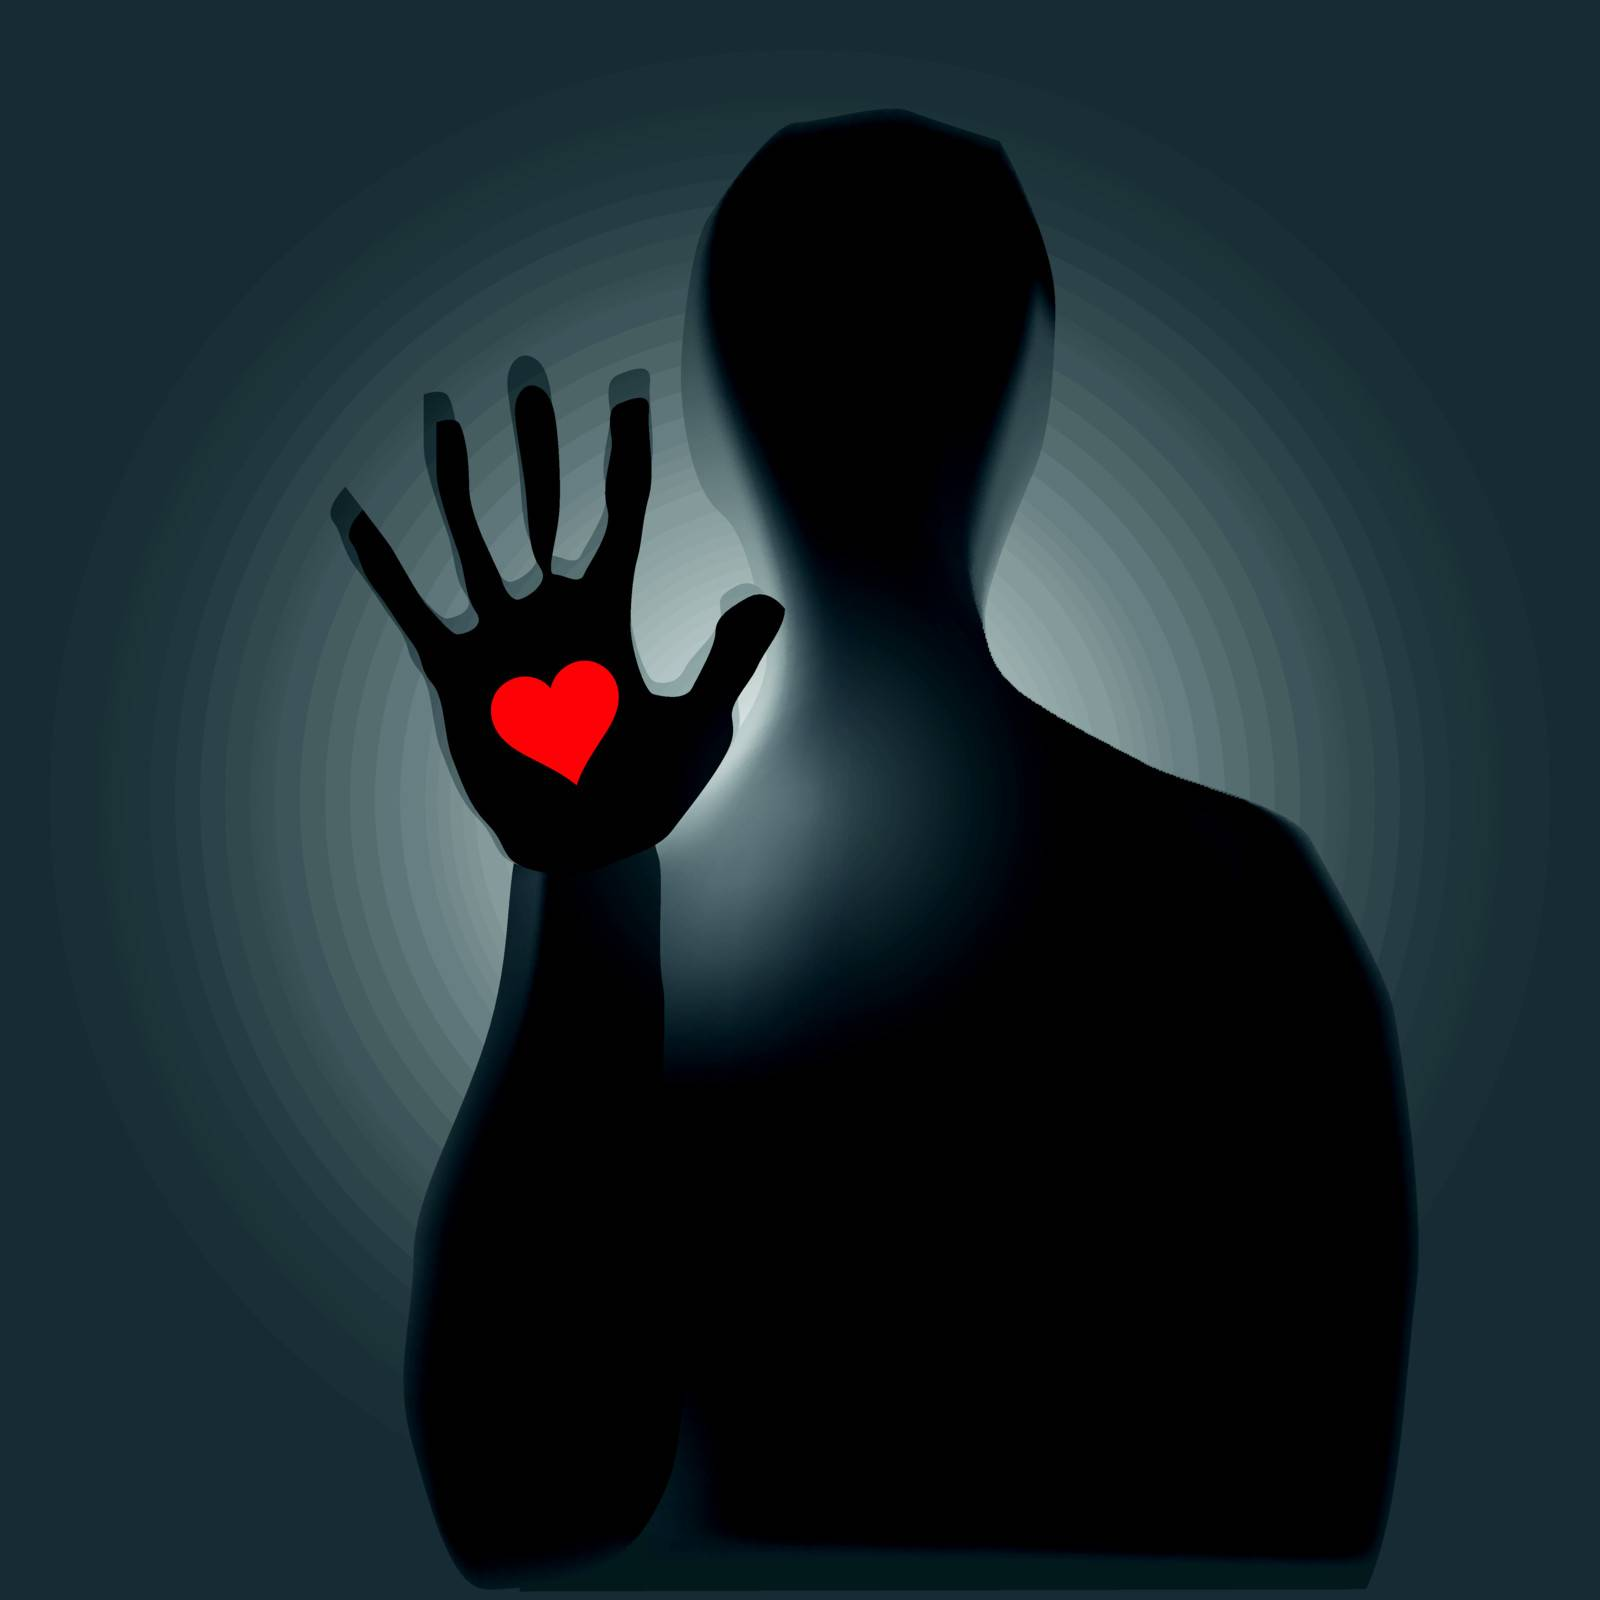 Heart in hand, a mystical figure. Vector illustration.